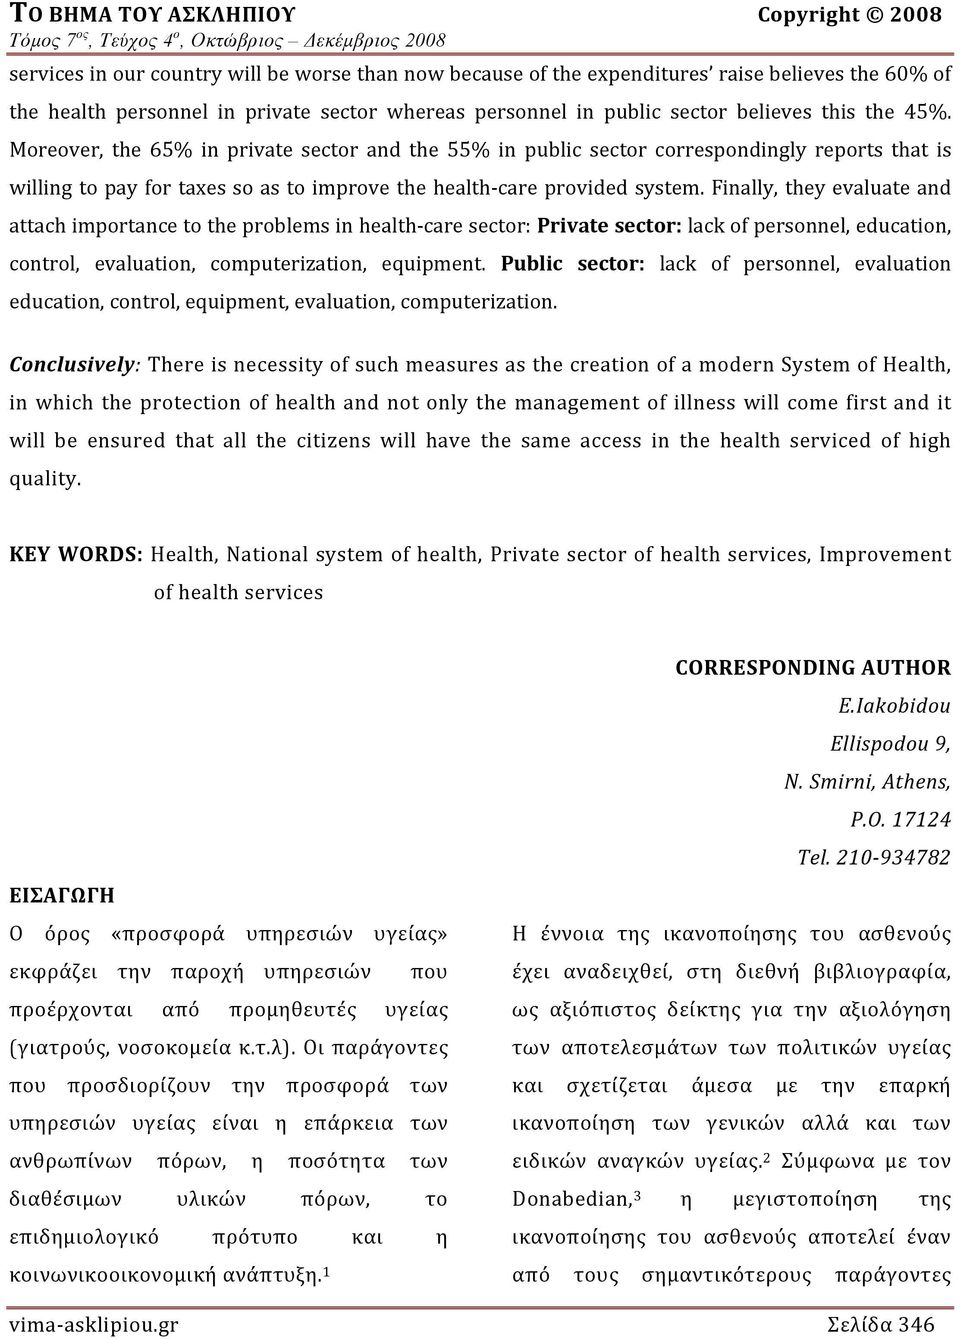 Finally, they evaluate and attach importance to the problems in health care sector: Private sector: lack of personnel, education, control, evaluation, computerization, equipment.